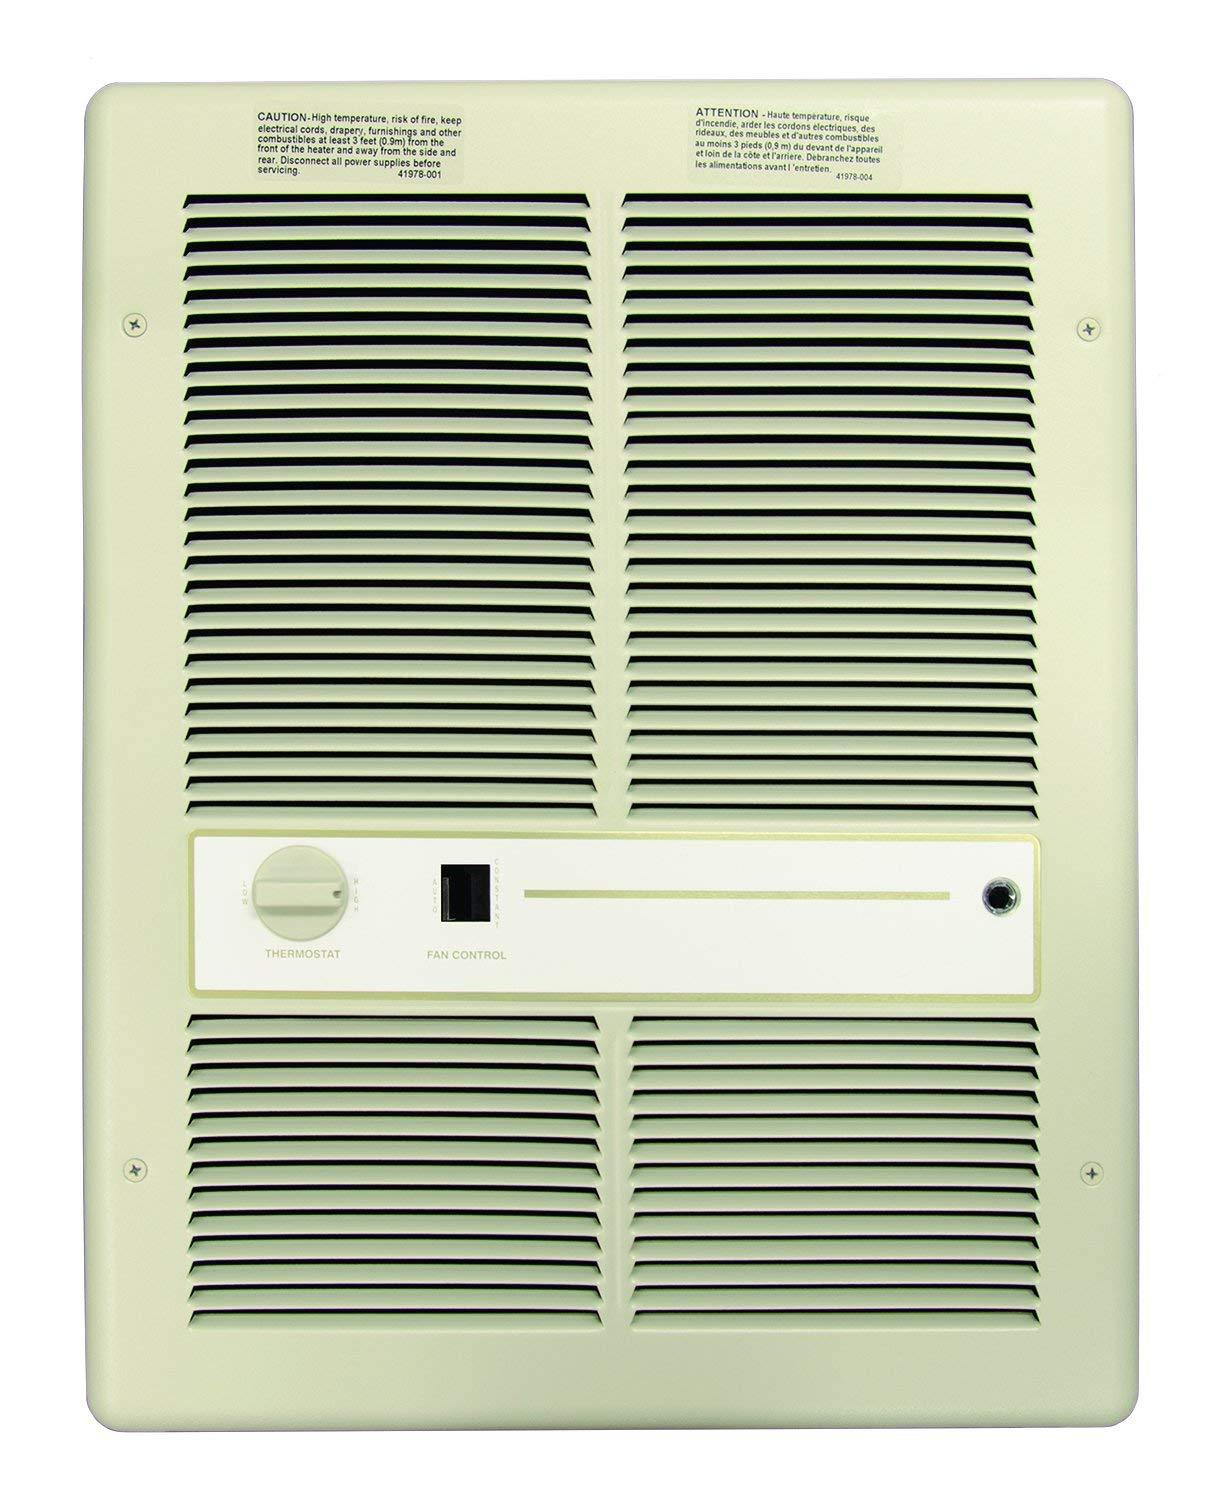 TPI 1000W 120V 3310 Series Fan Forced Wall Heater (Ivory) - With Summer Fan Switch - 1 Pole Thermostat - E3312TSRP